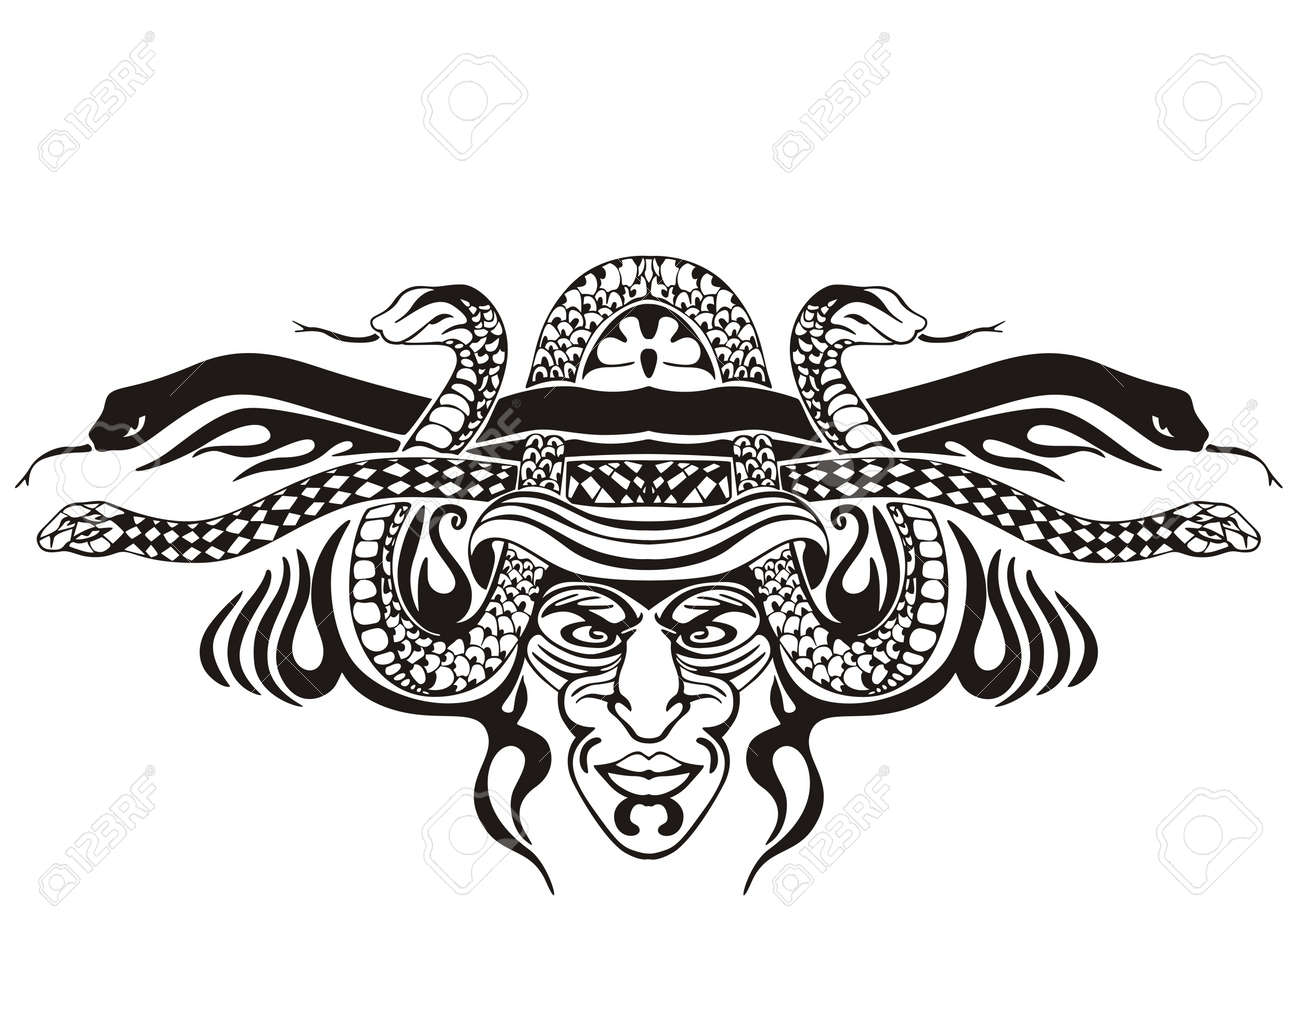 Stylized symmetric vignette with snakes. Stock Vector - 17331773